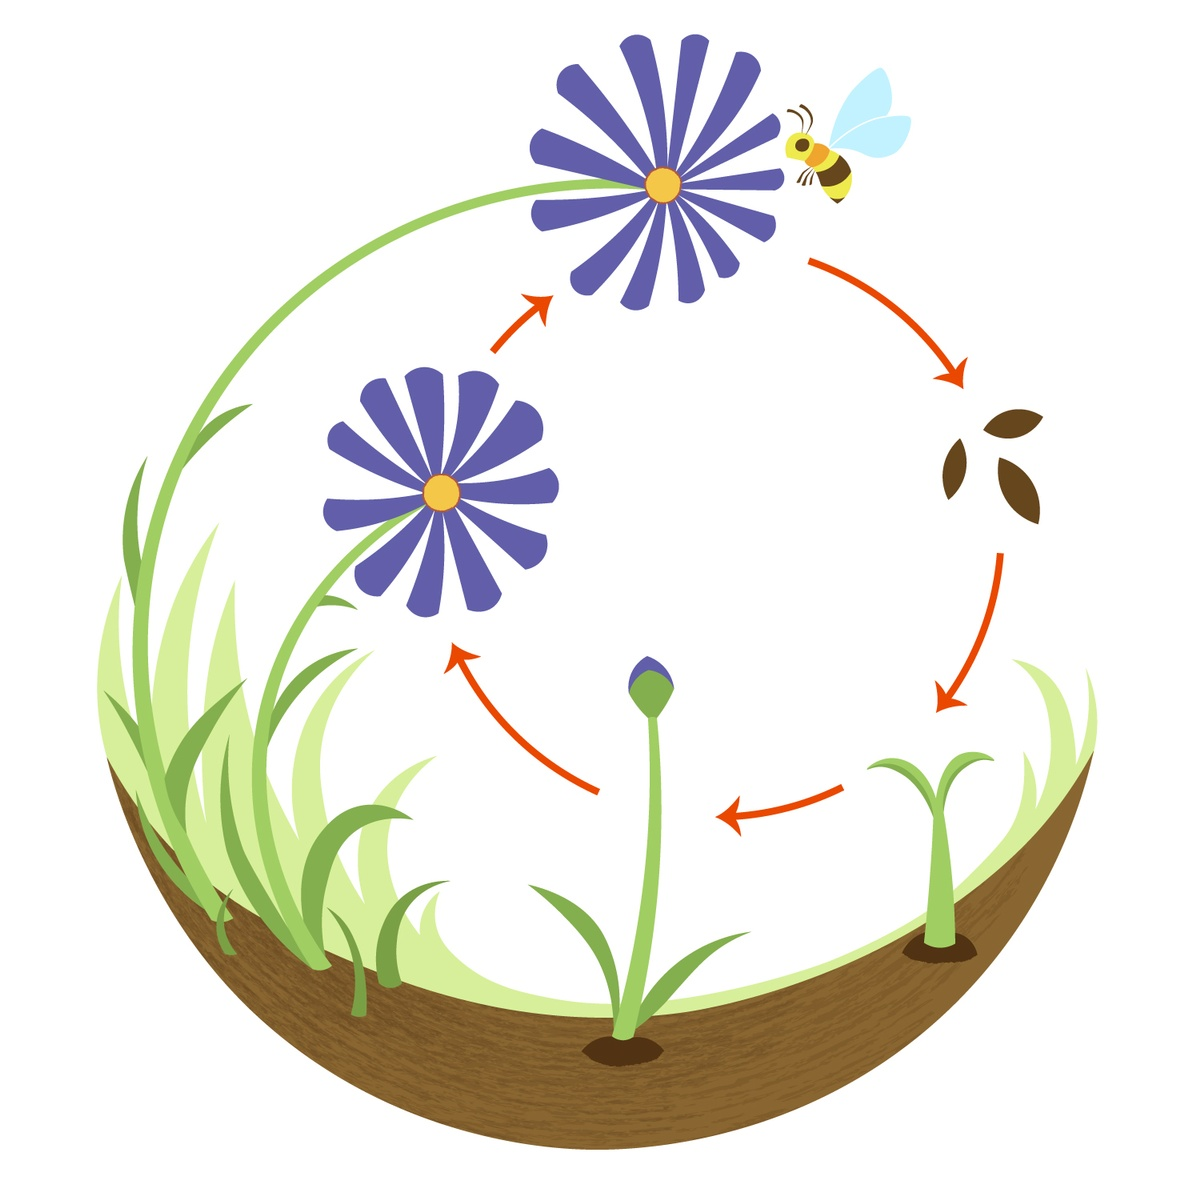 What is the life cycle of a flower?